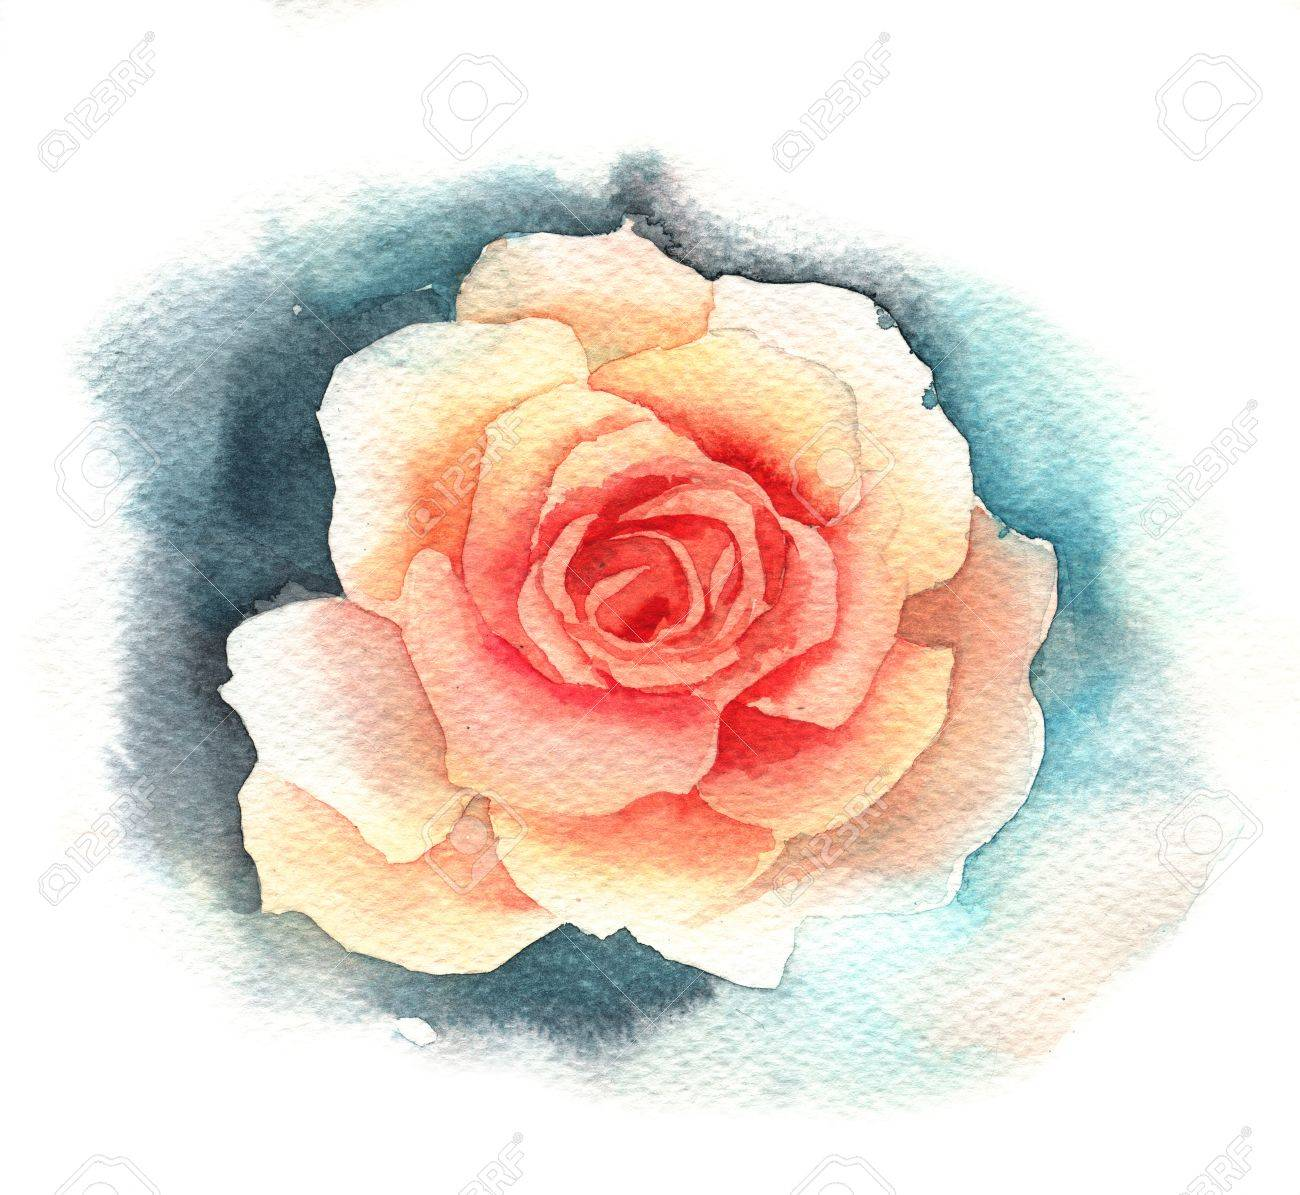 watercolor rose stock photo picture and royalty free image image